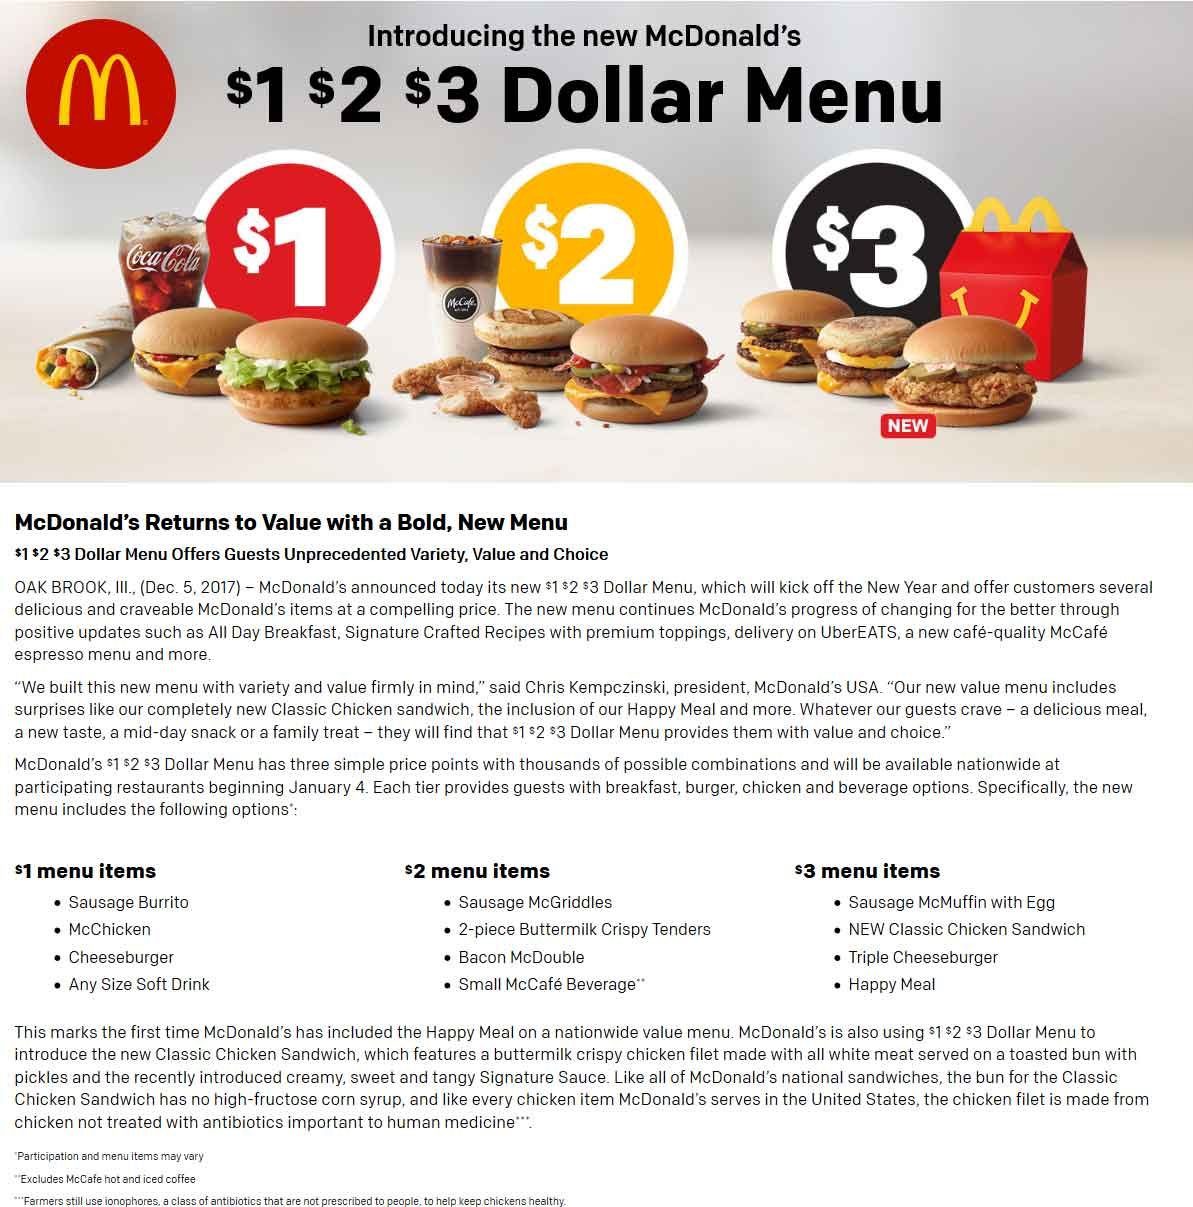 McDonalds Coupon December 2018 Happy meal added to McDonalds updated dollar menu